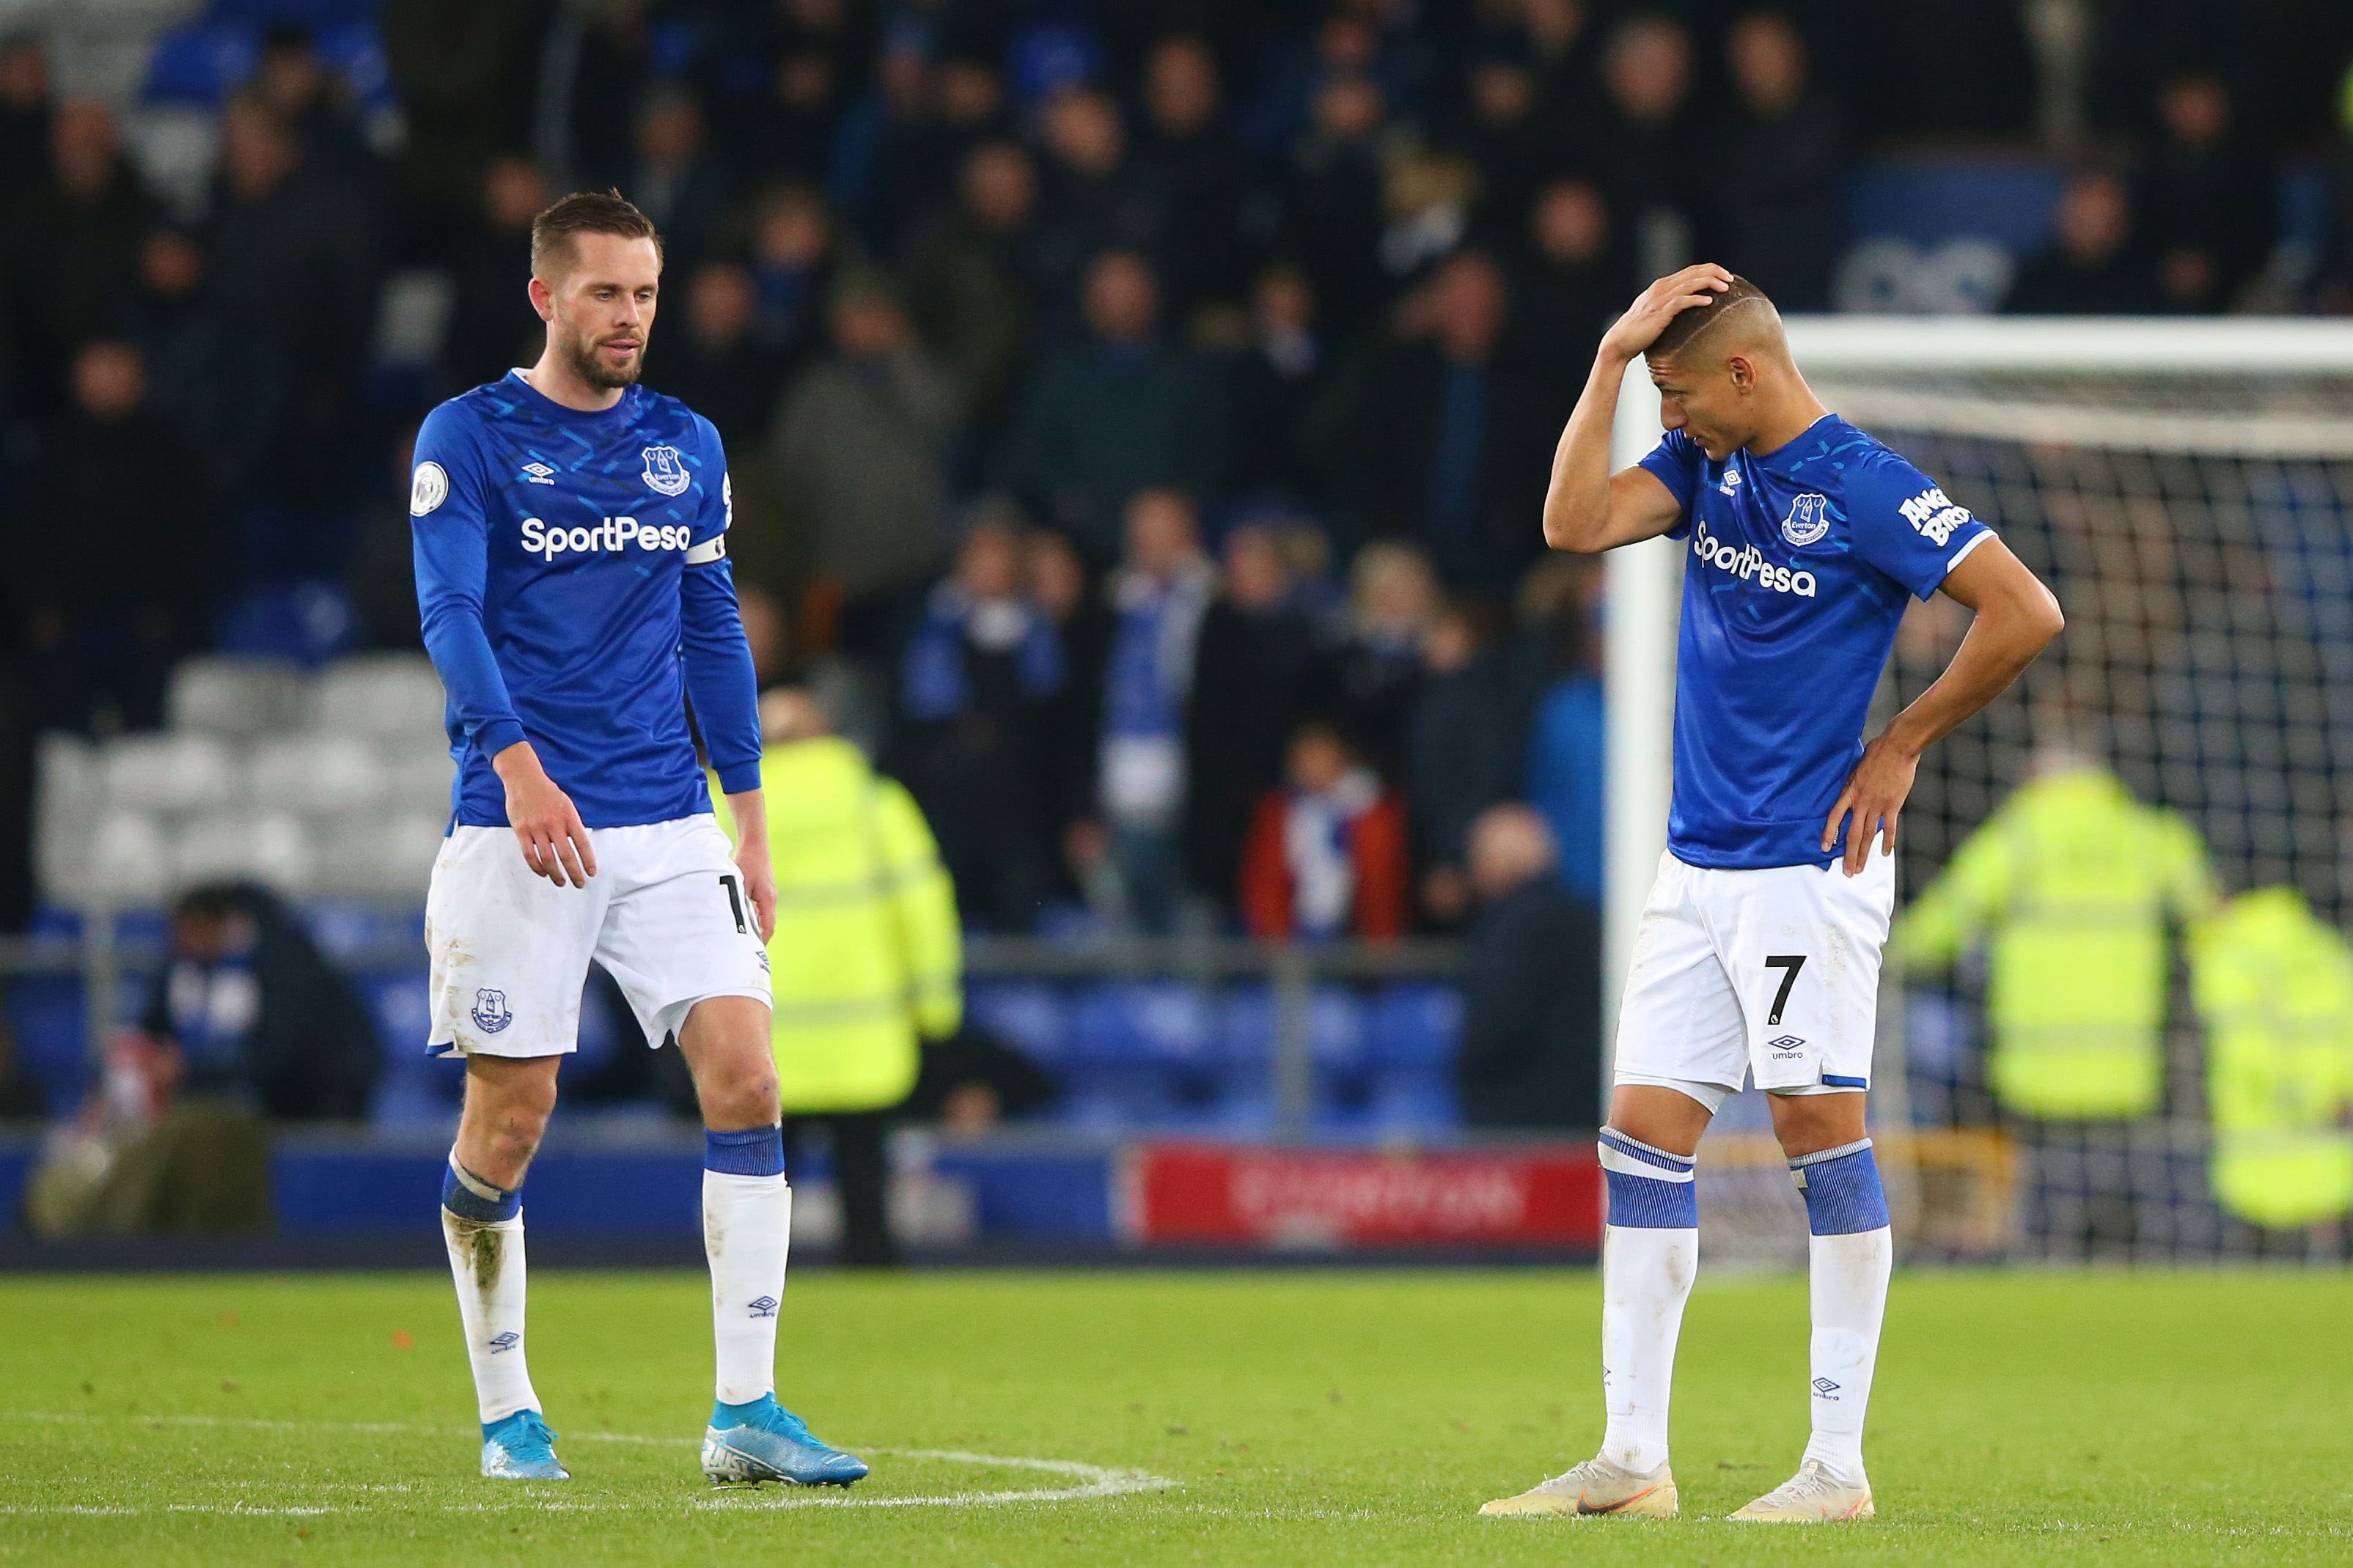 Everton's injury woes continue ahead of Newcastle clash